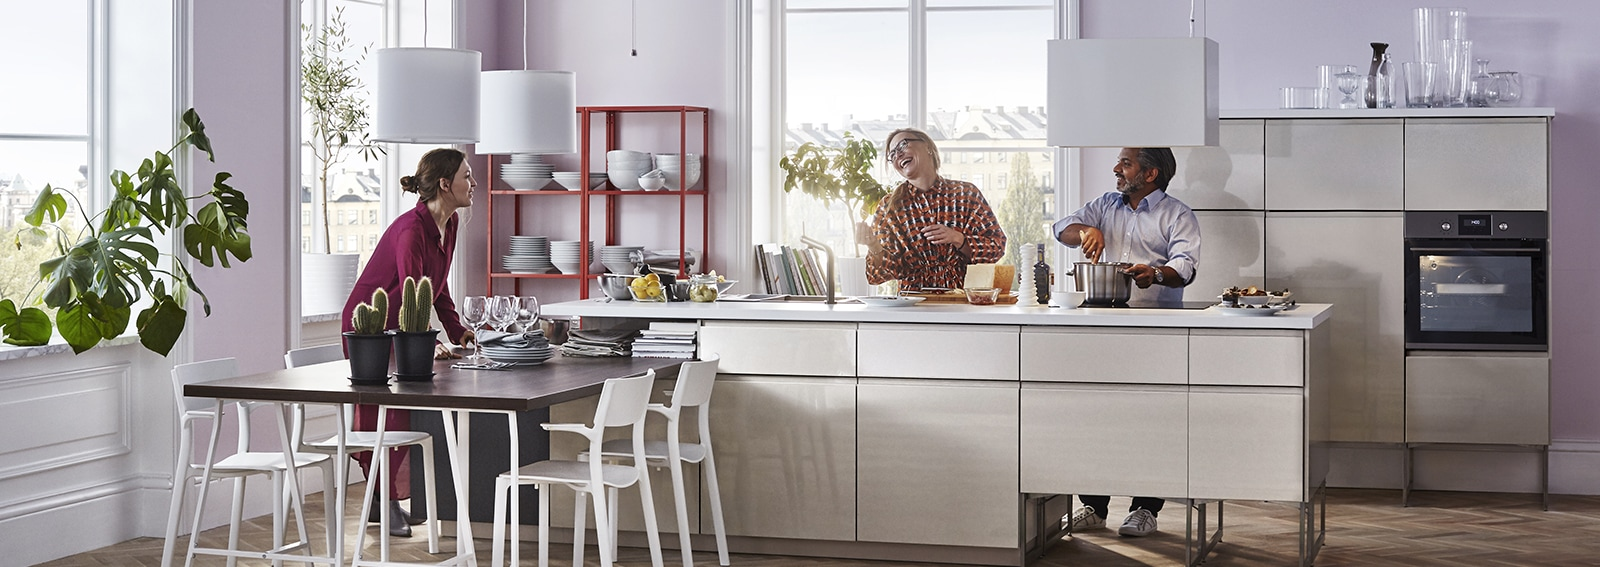 Best Cucine Ikea 2014 Images - harrop.us - harrop.us